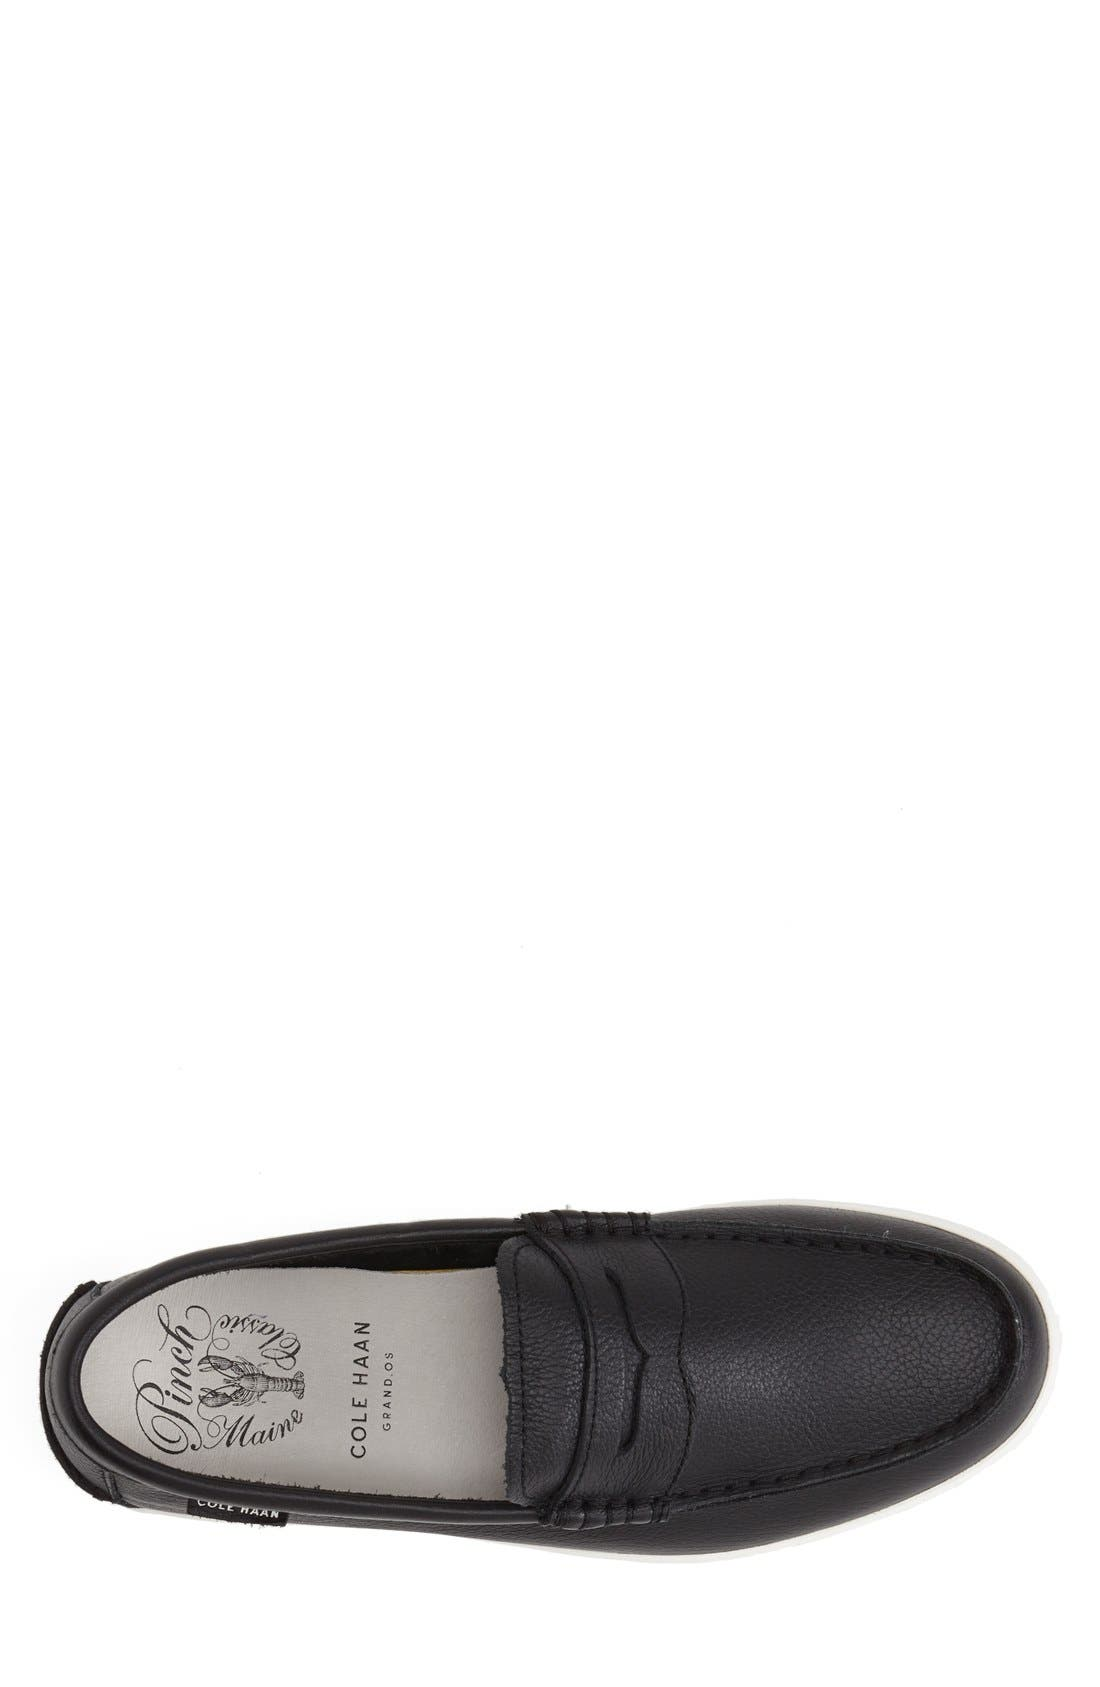 COLE HAAN, 'Pinch' Penny Loafer, Alternate thumbnail 6, color, BLACK LEATHER/ WHITE